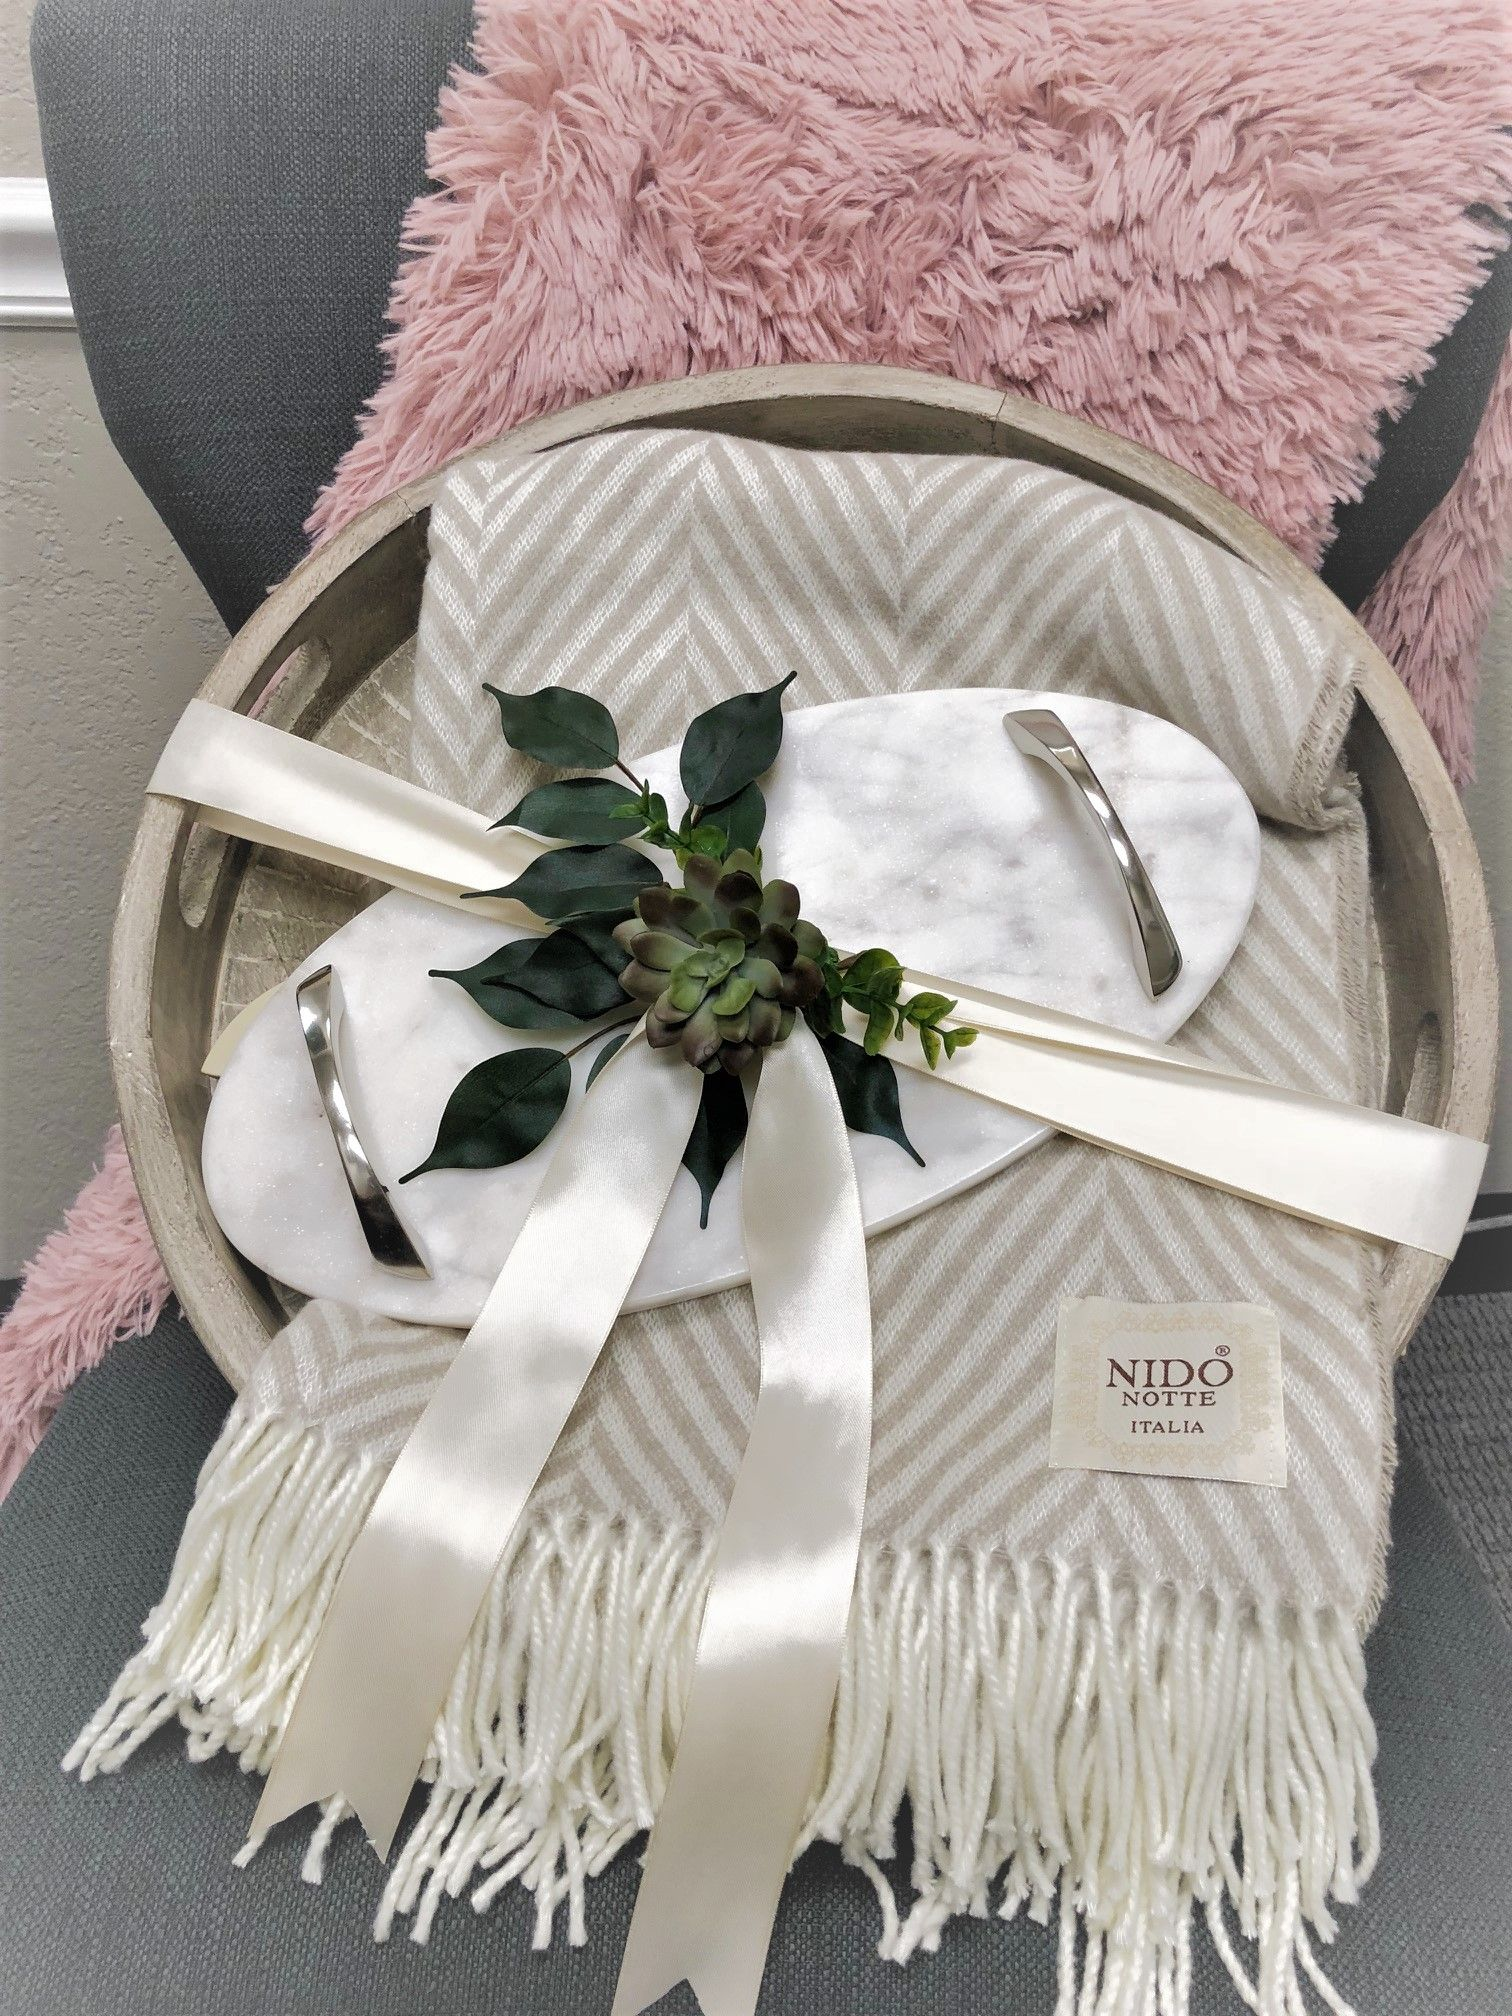 House Warming Gift Idea Cozy Home Marble Details Italian